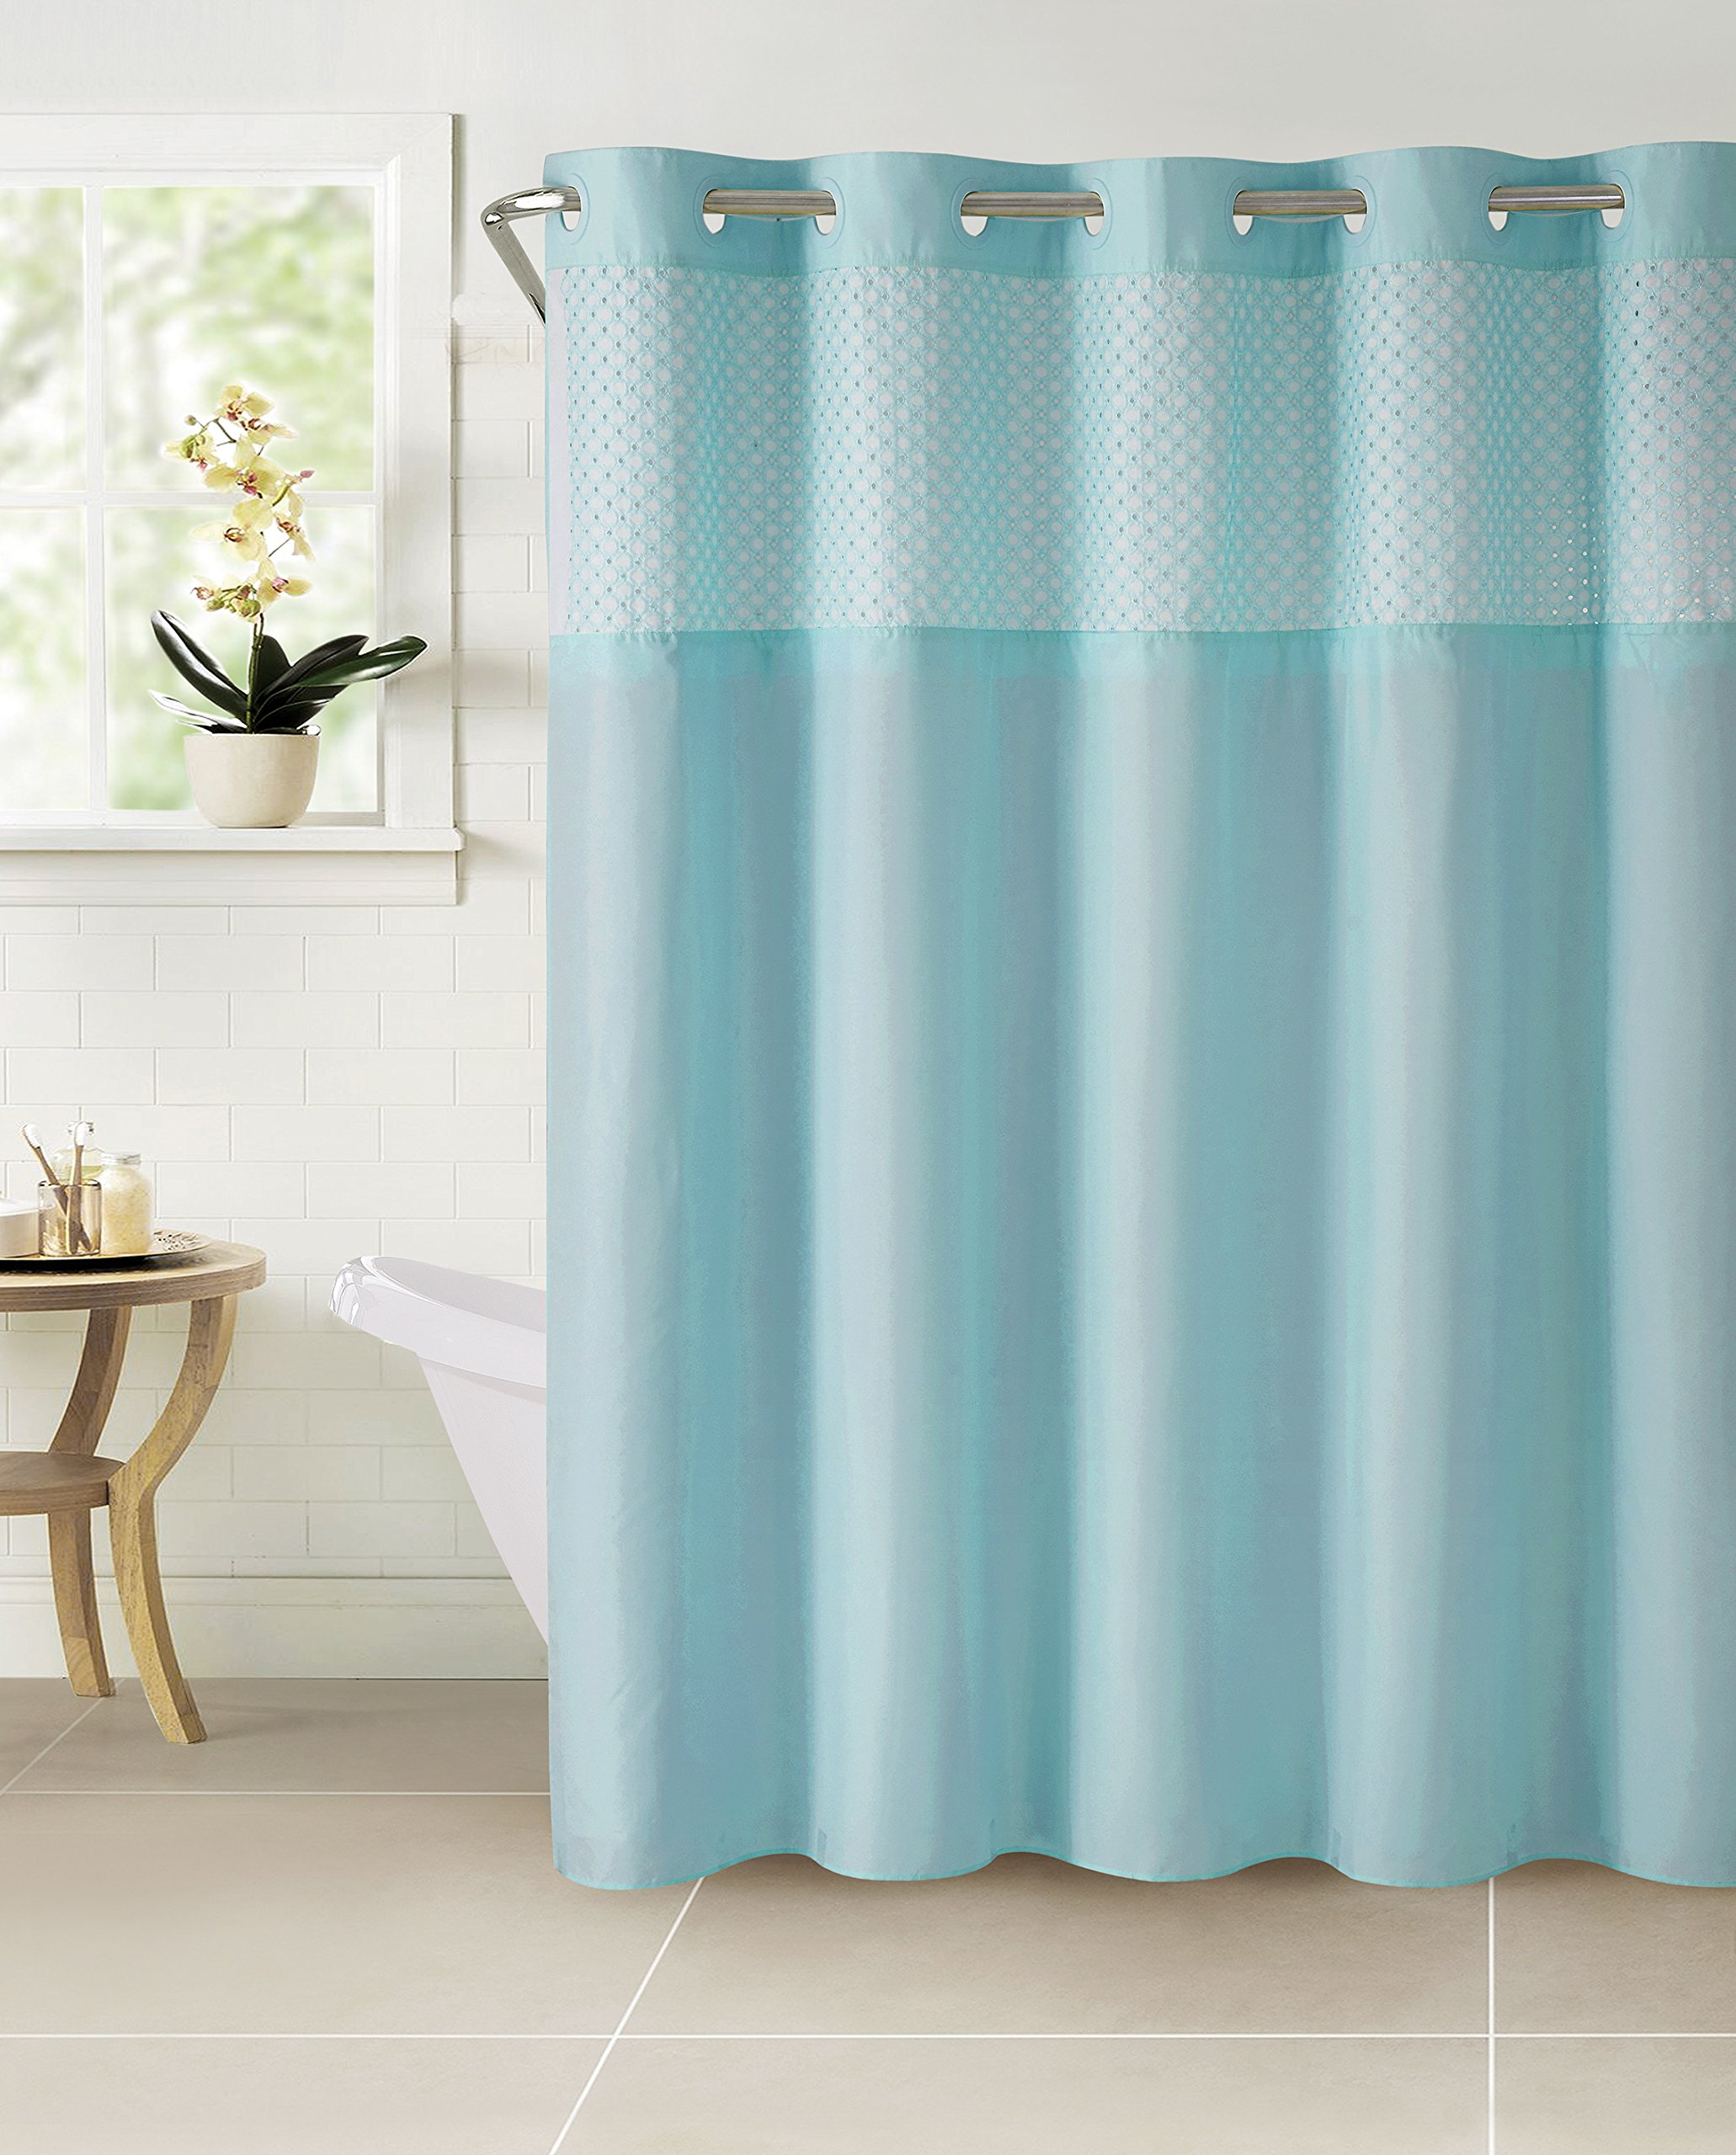 Hookless RBH40MY113 Bahamas Shower Curtain with Peva Liner - Crystal